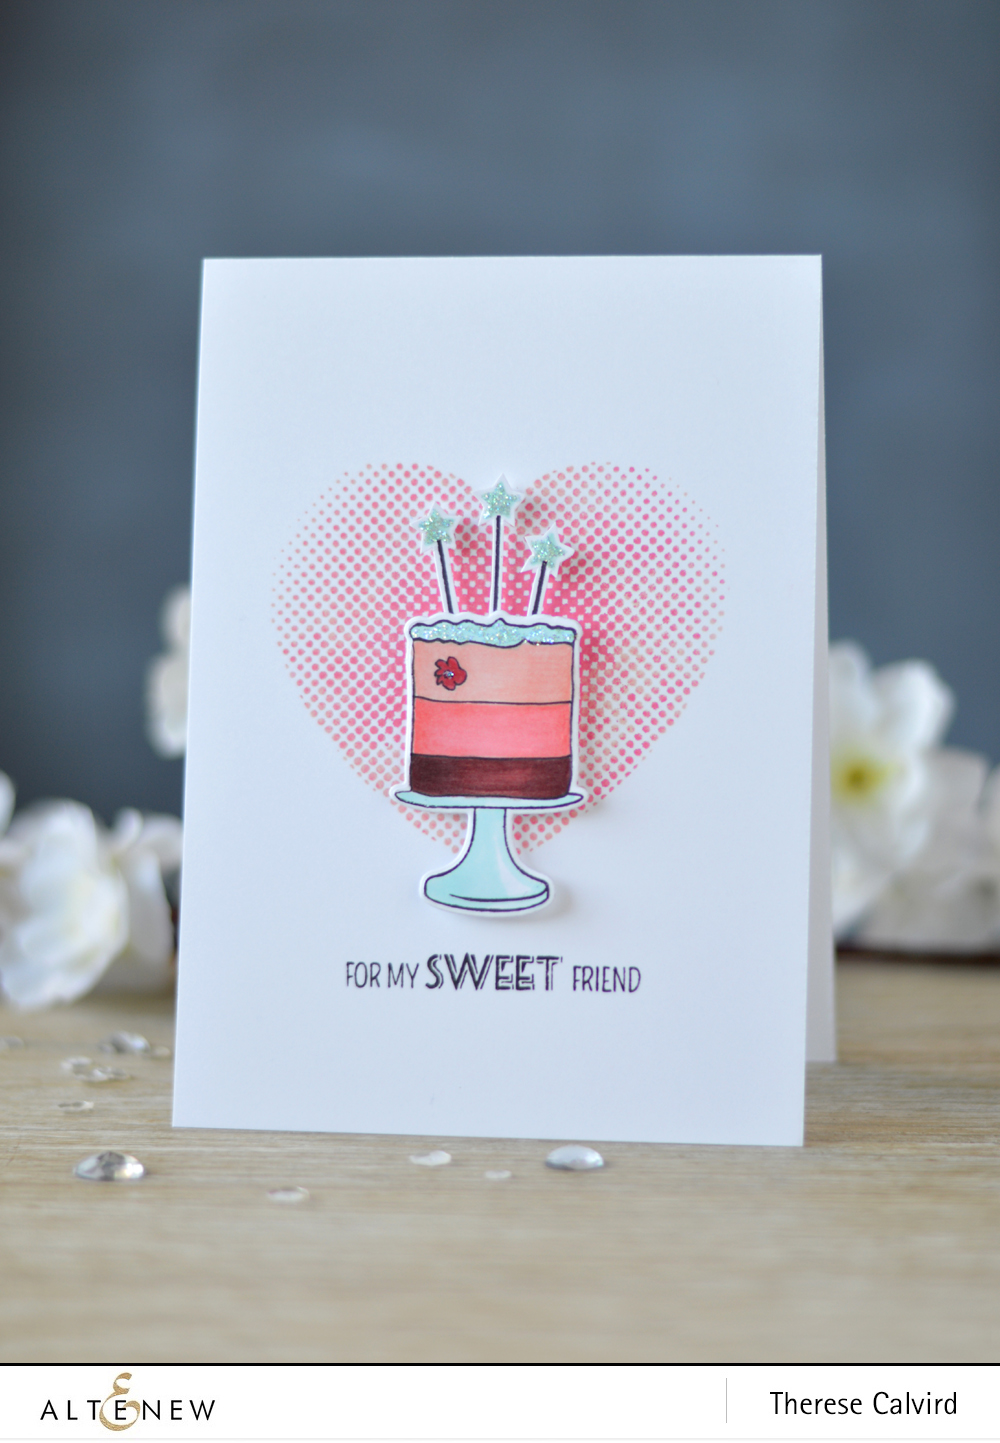 Altenew - Cake Love - Halftone Hearts - Layered Cupcake - Wood Pallet Background - Lostinpaper (card video) 1 copy